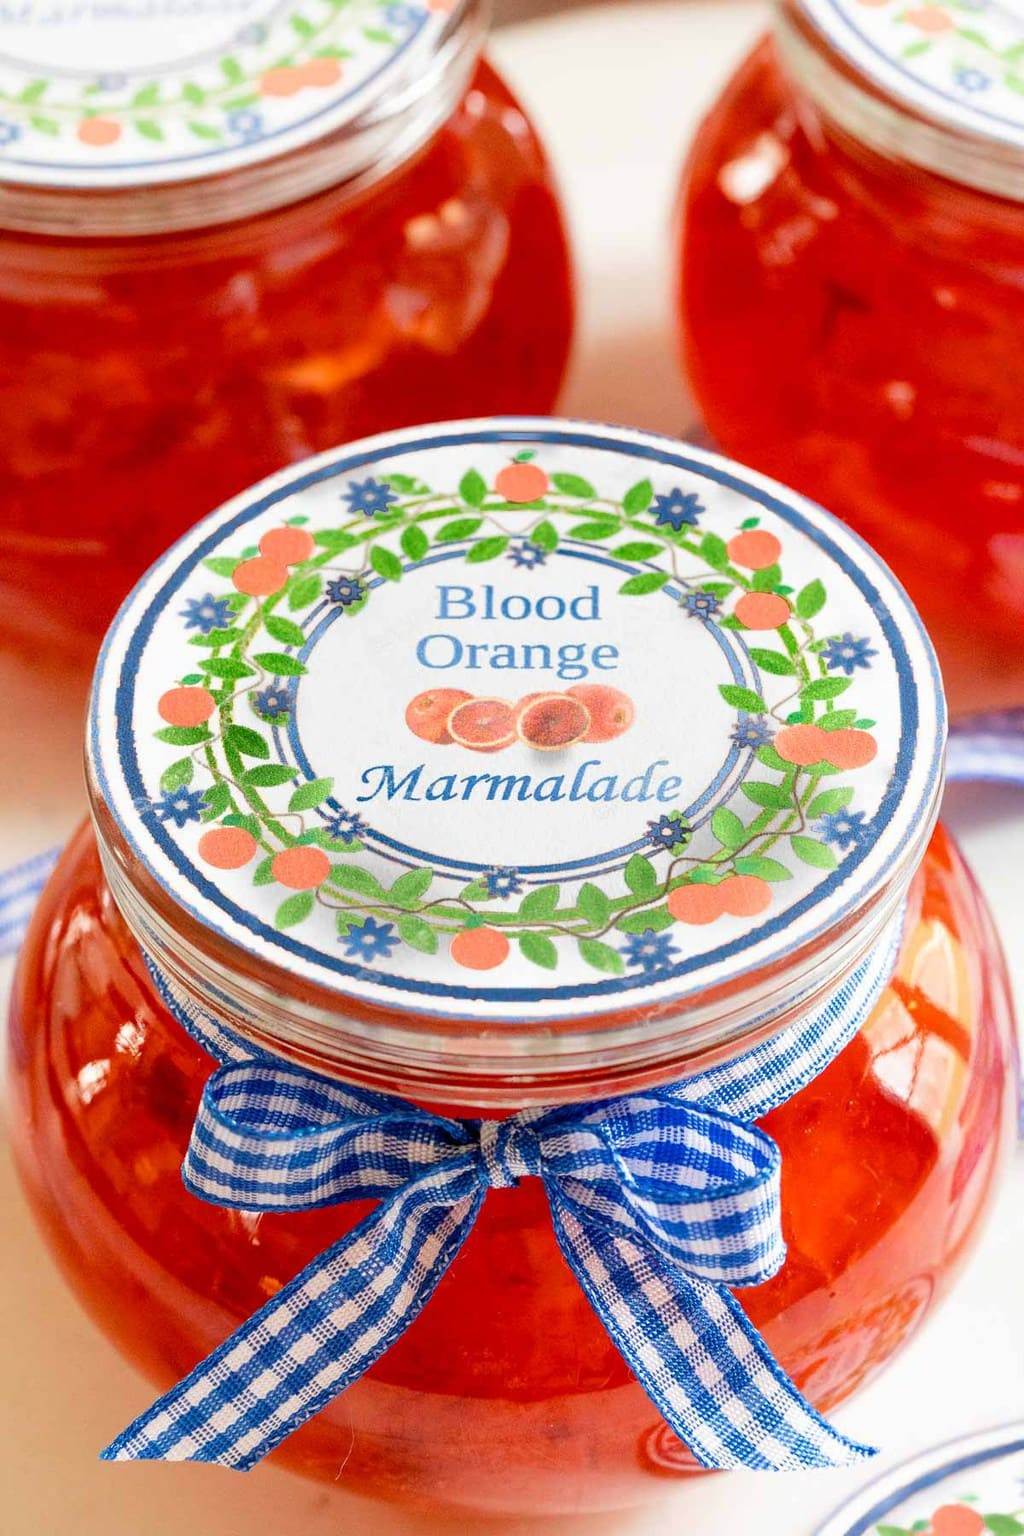 Vertical closeup photo of the custom gift label for Blood Orange Marmalade.